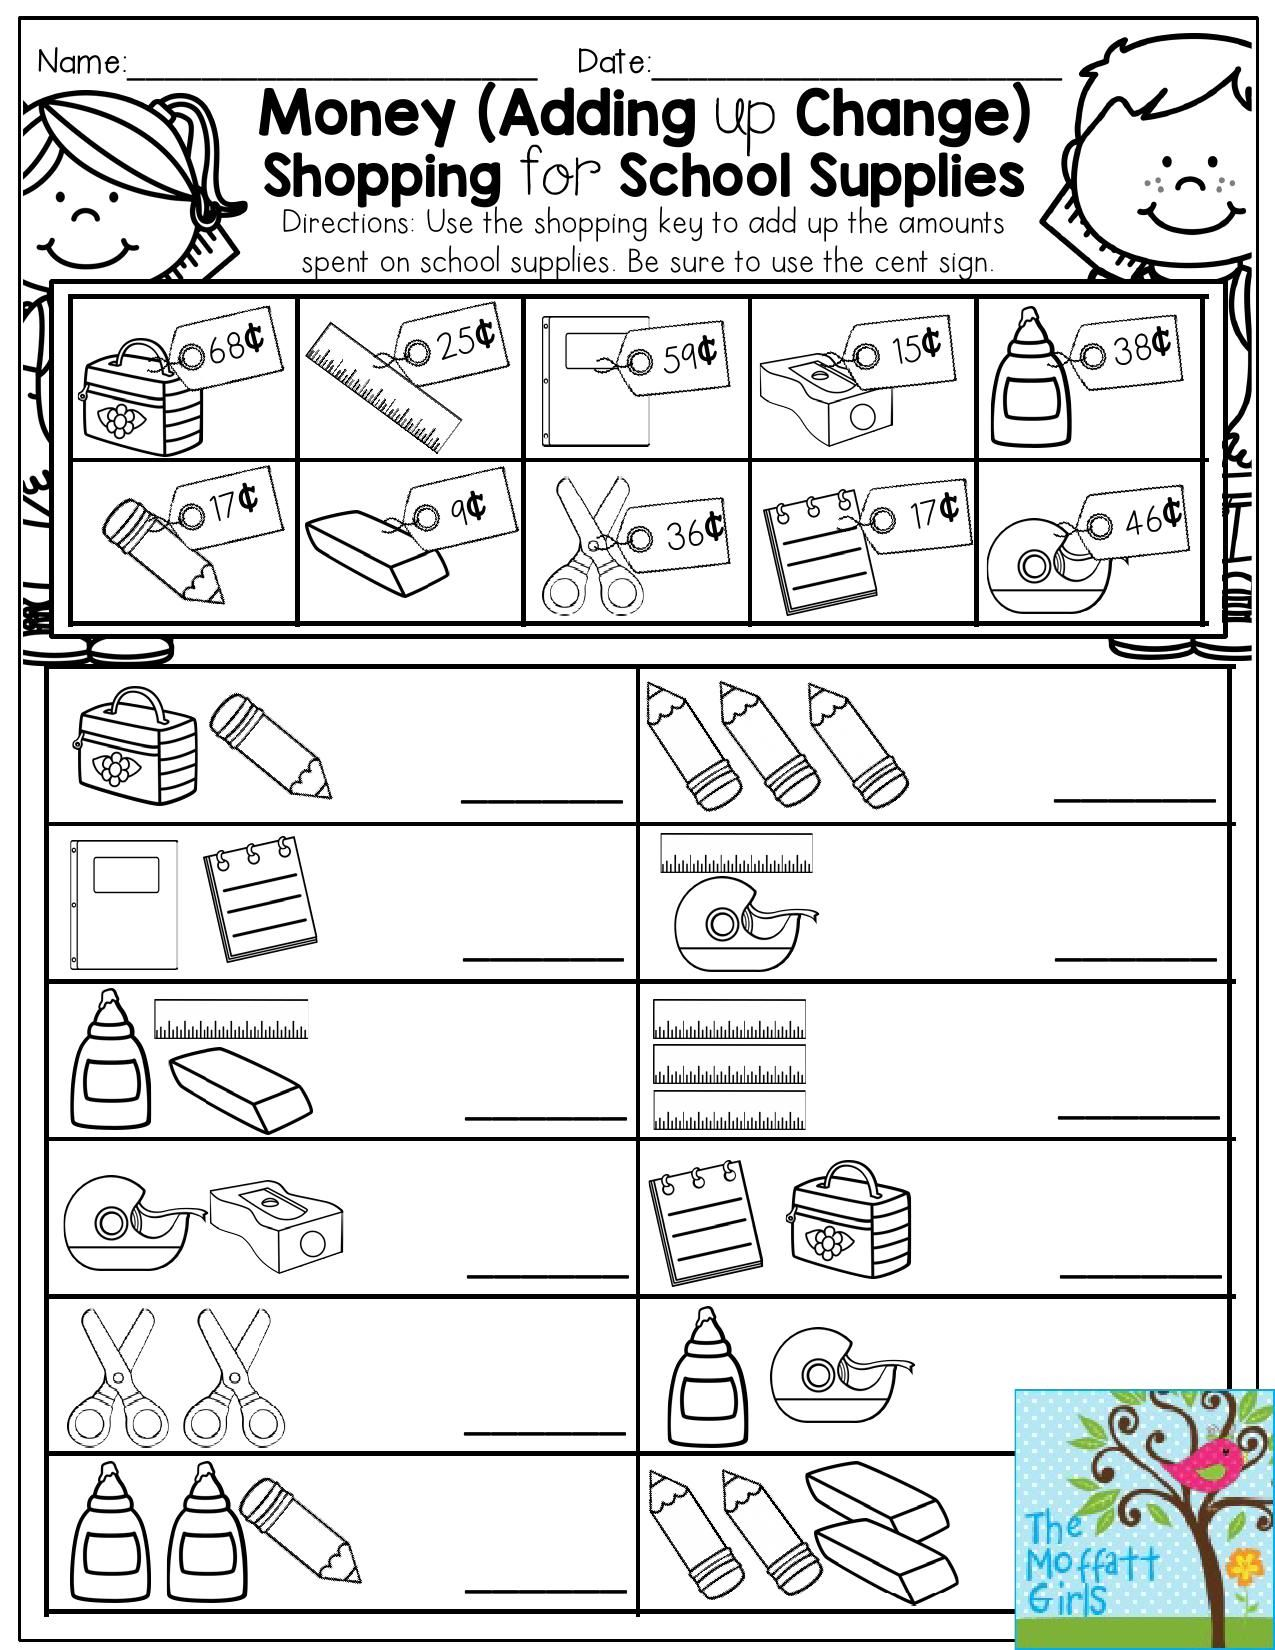 Make Money Worksheets : Money adding up change shopping for school supplies